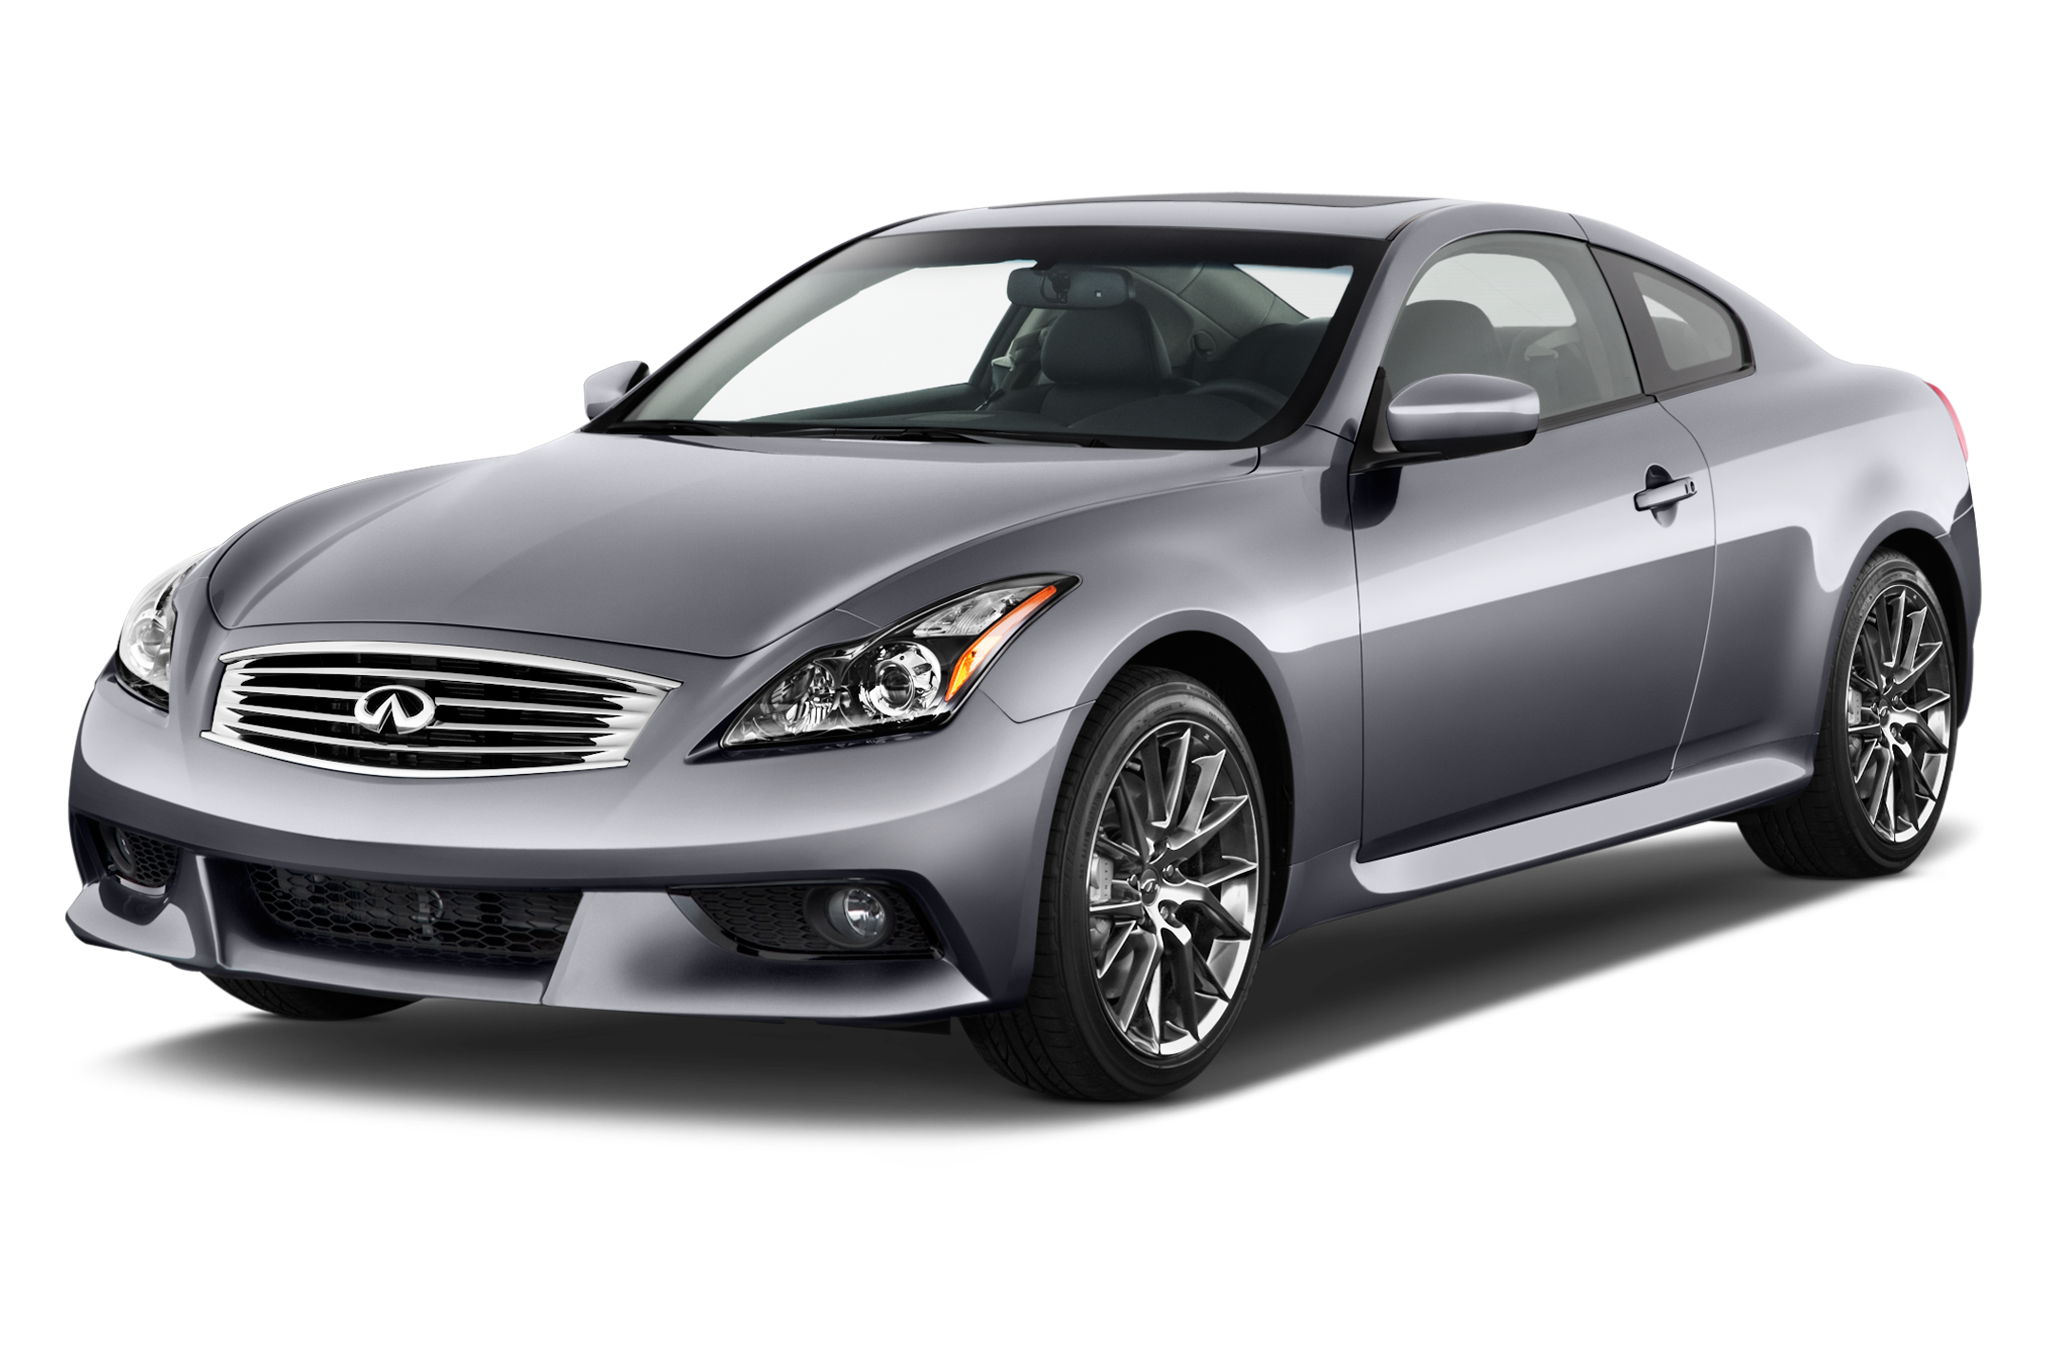 2011 infiniti g37 coupe ipl editors 39 notebook automobile magazine. Black Bedroom Furniture Sets. Home Design Ideas